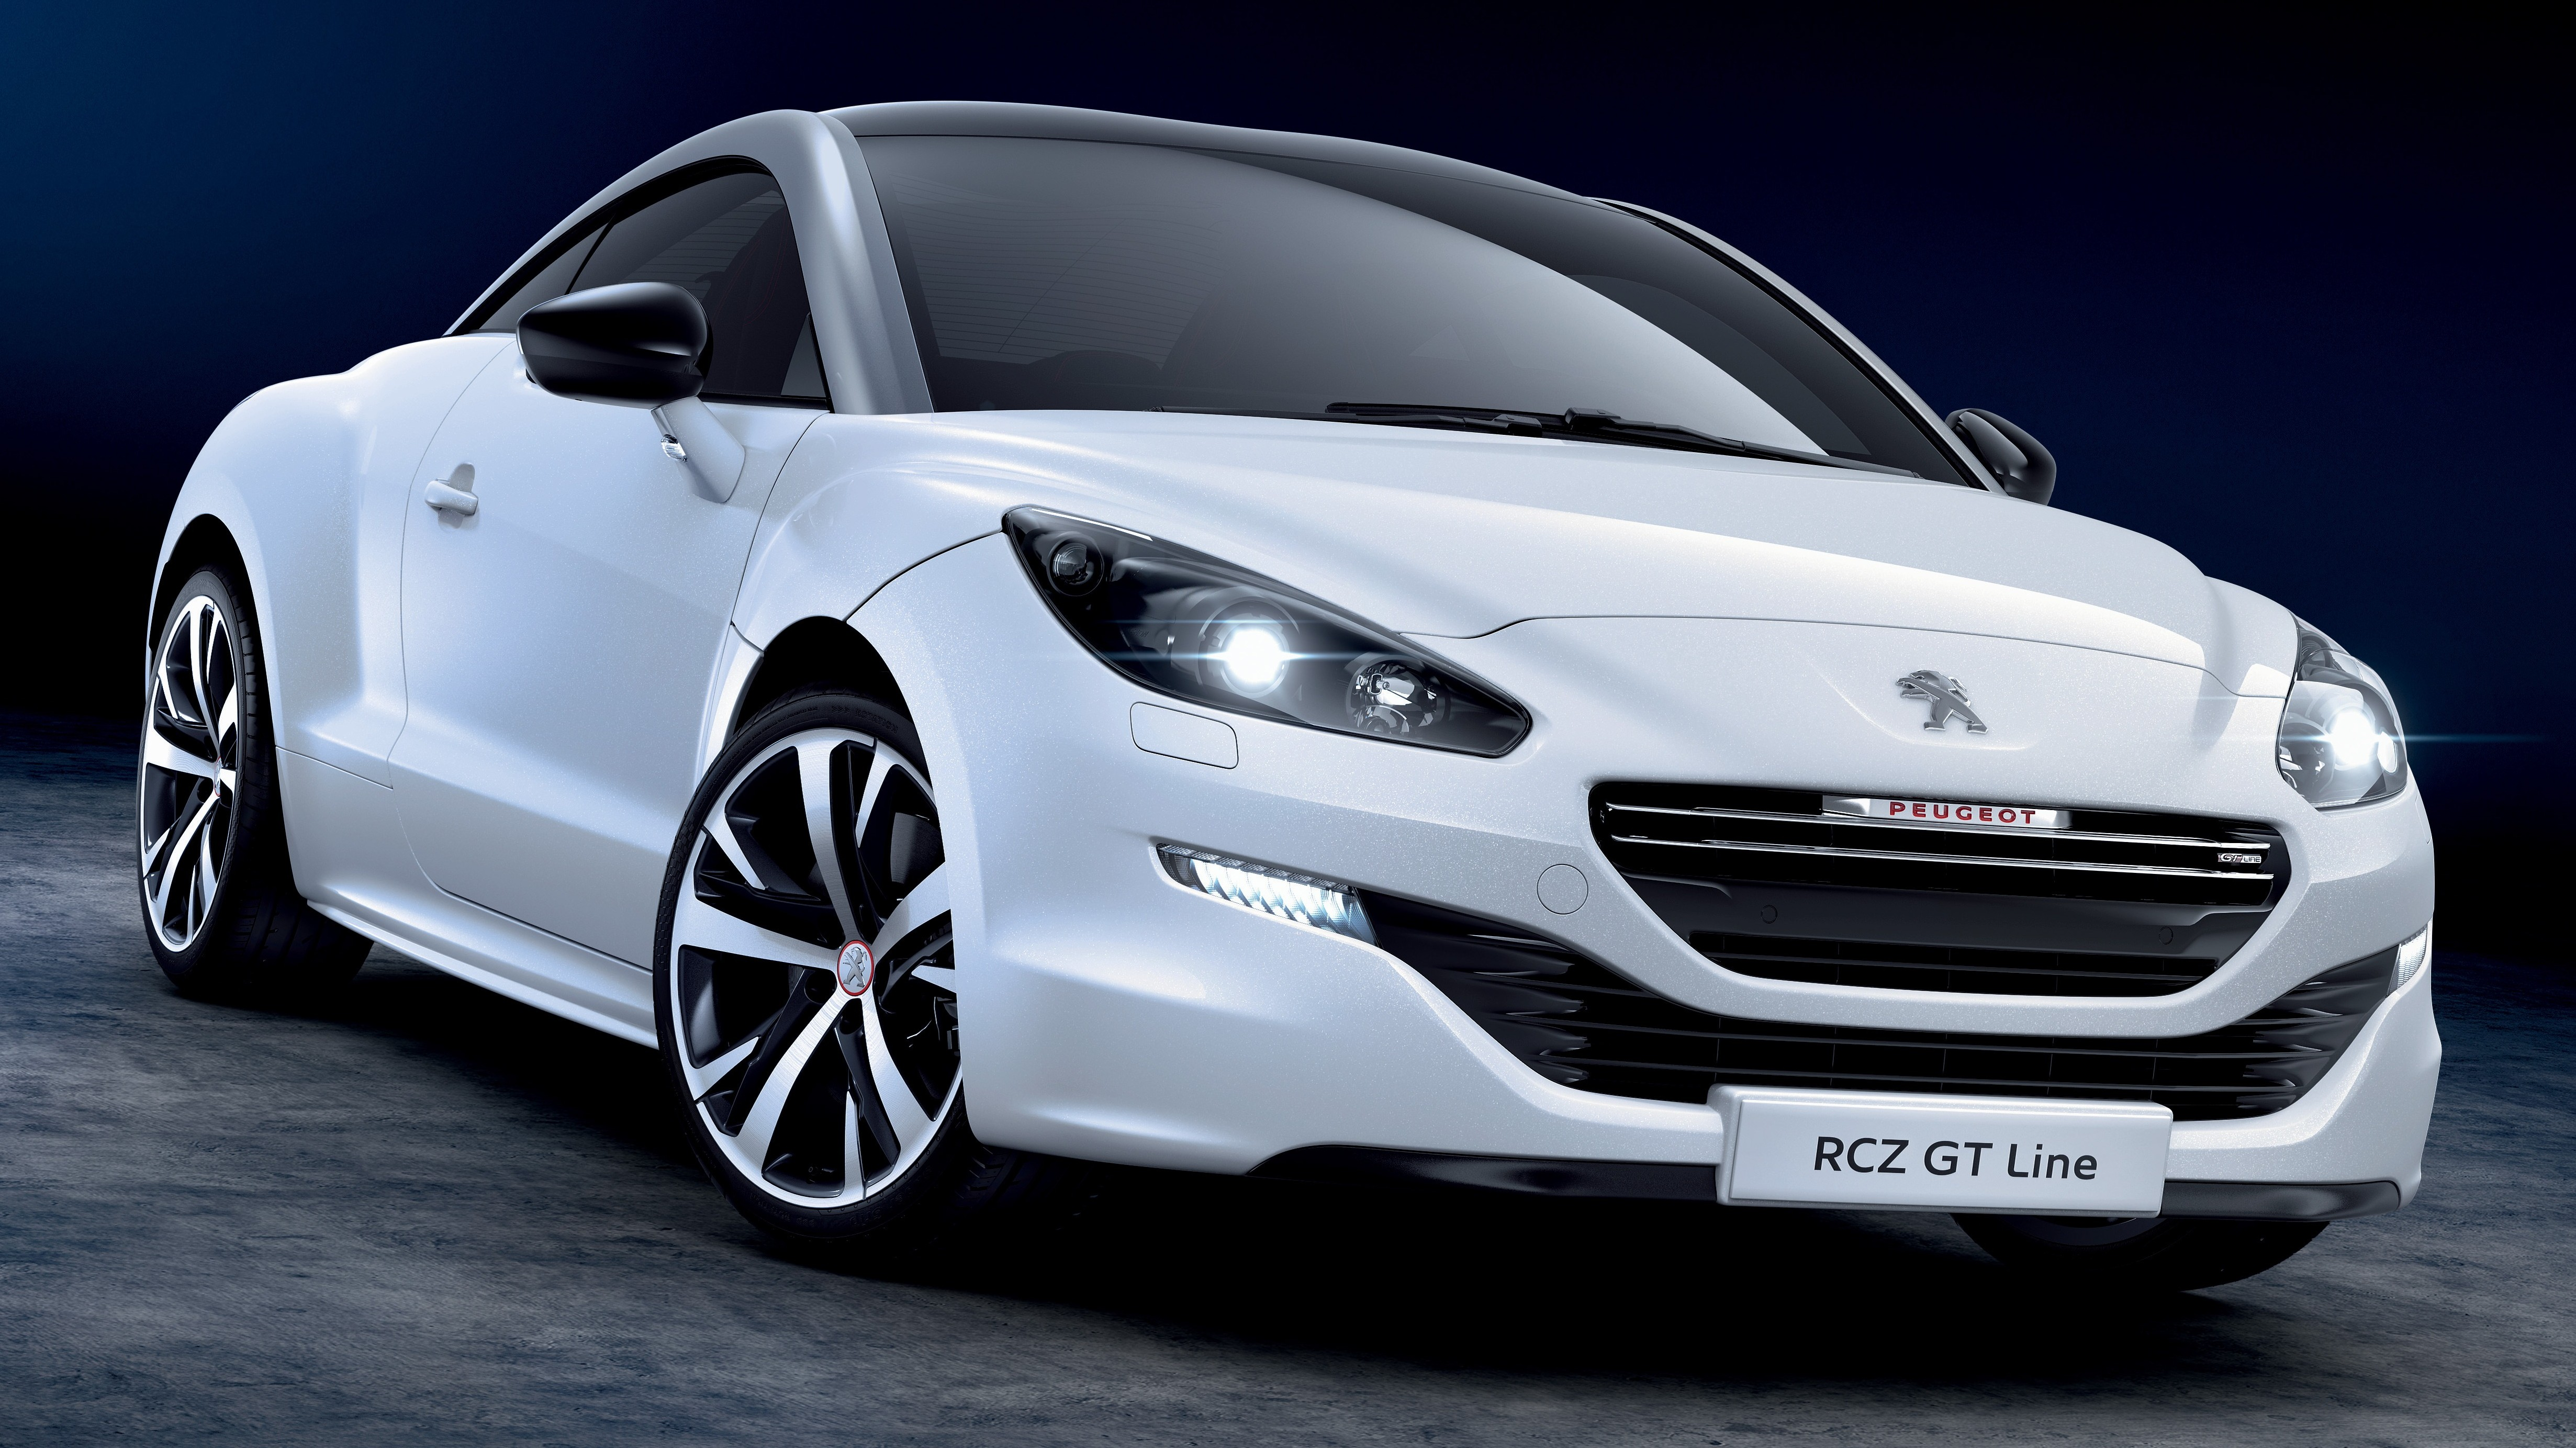 peugeot gt line trim announced for the uk market paul tan. Black Bedroom Furniture Sets. Home Design Ideas